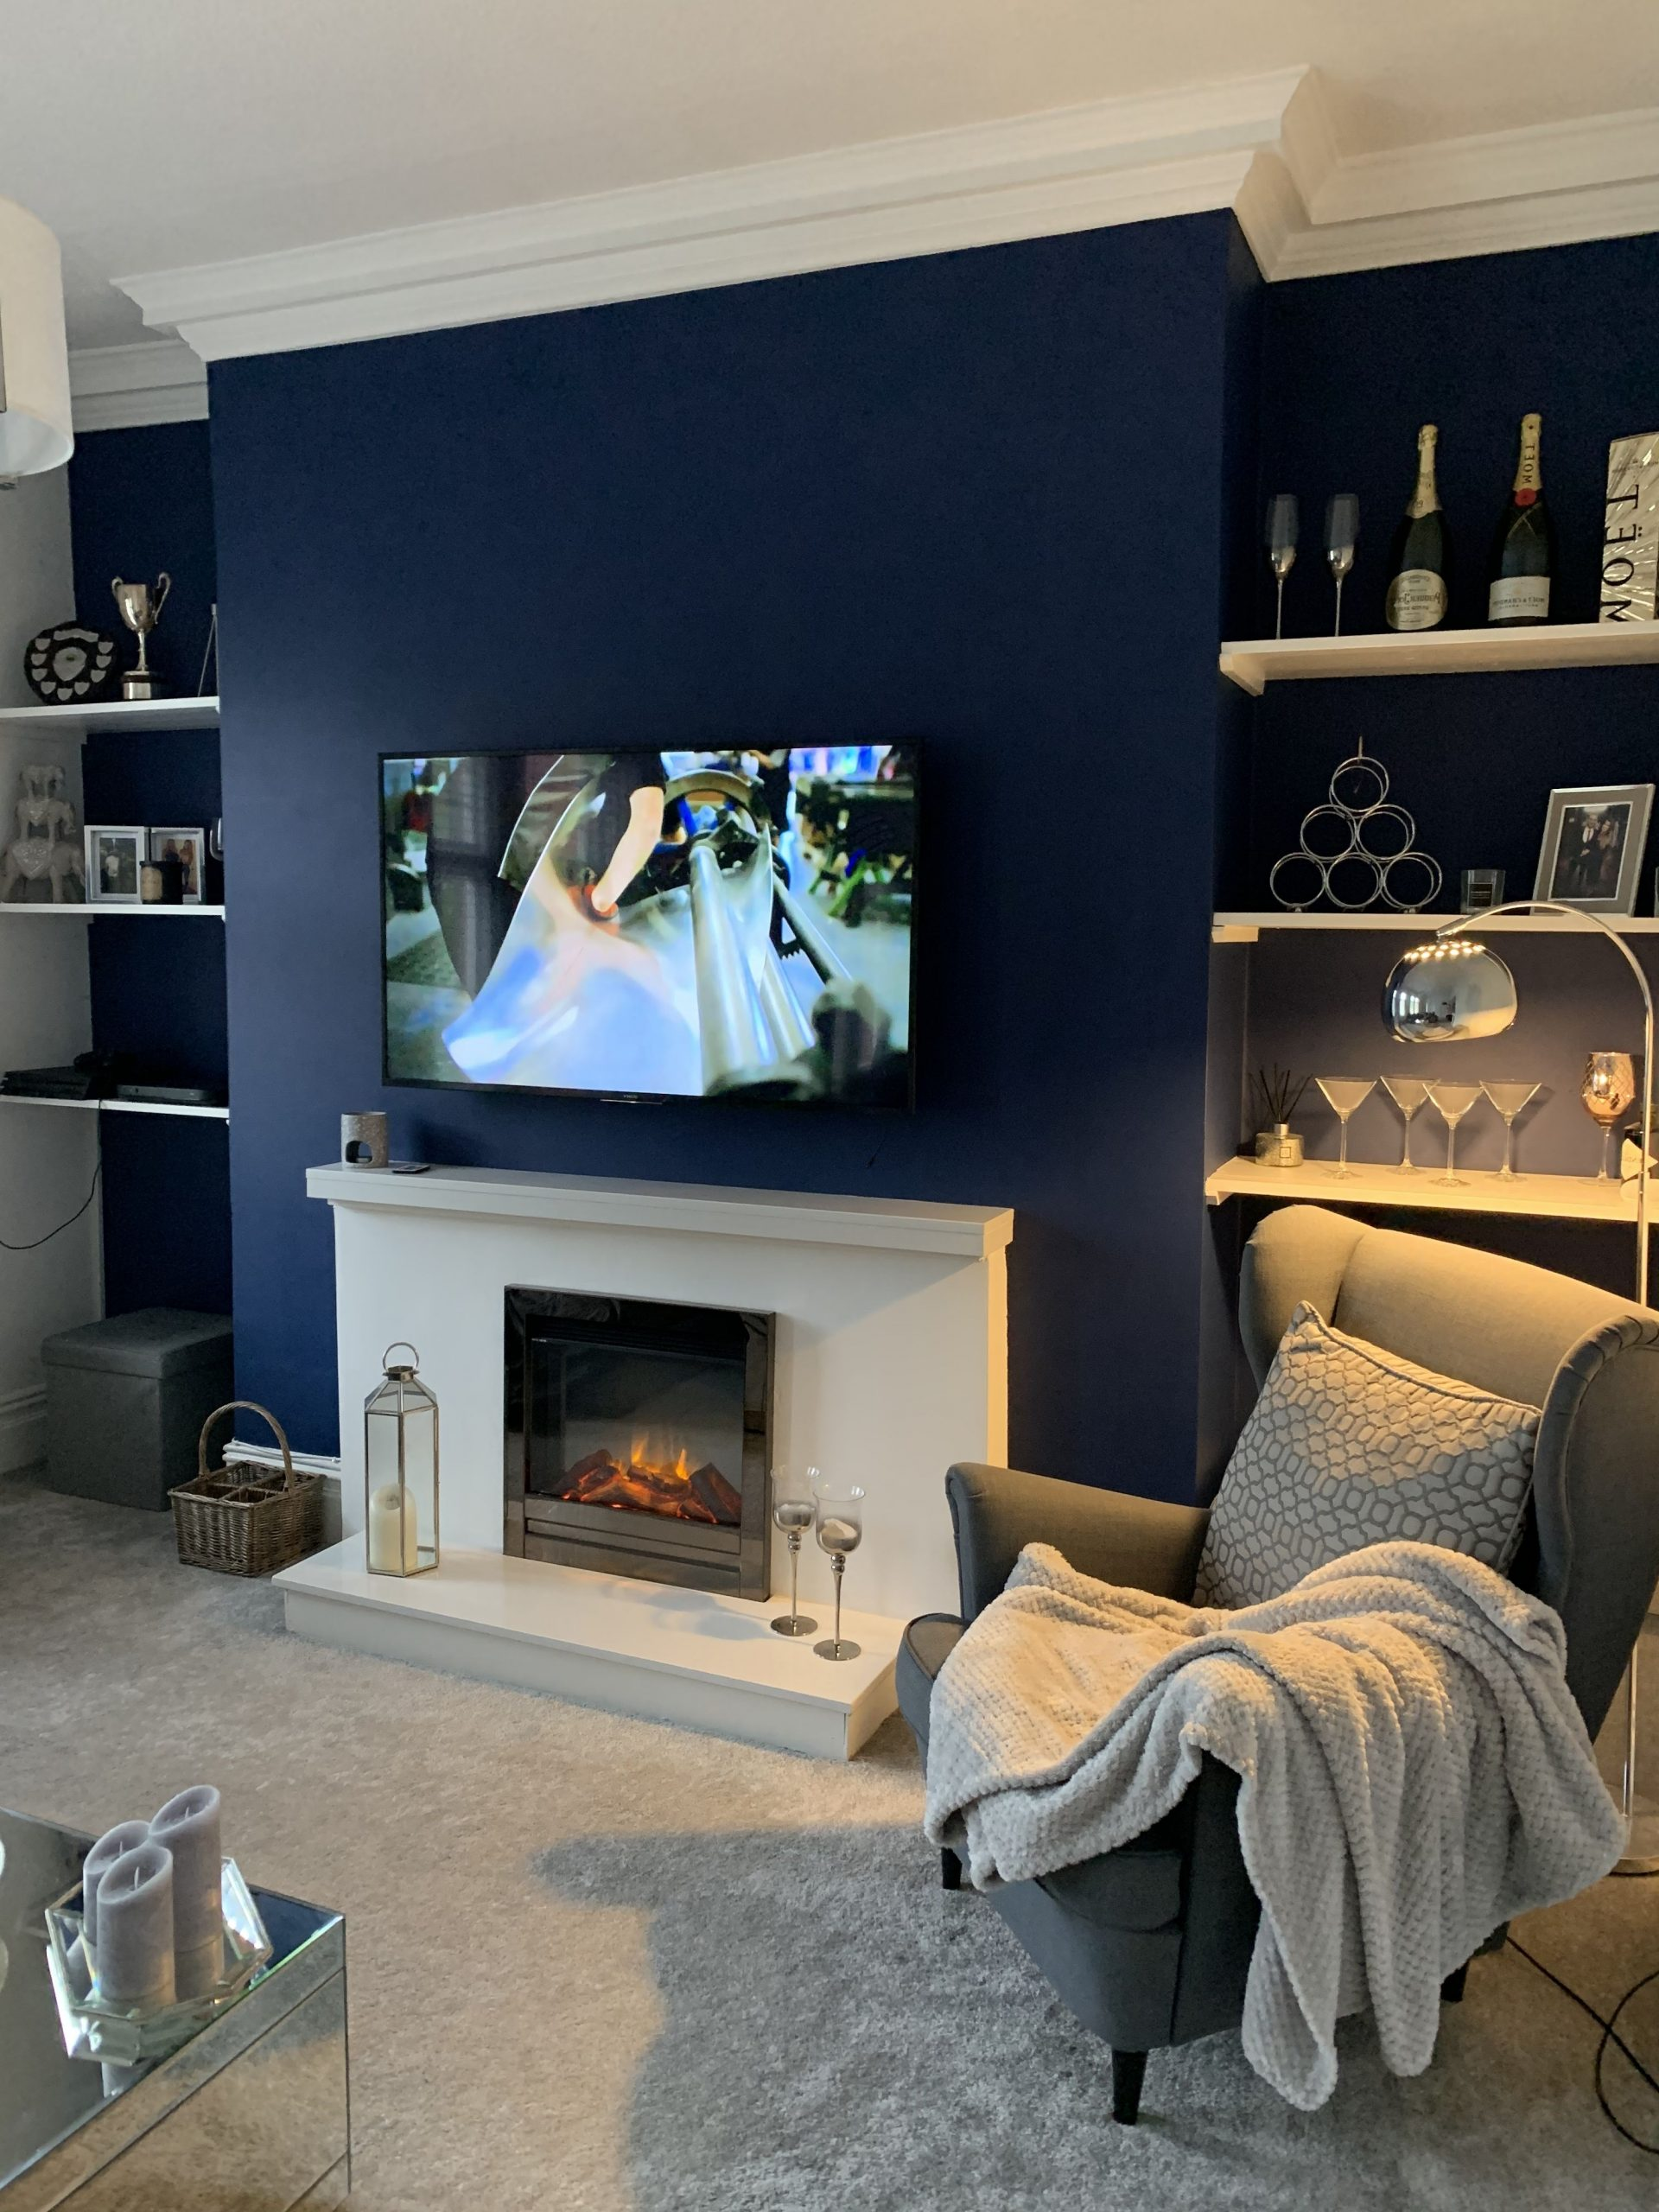 Pin On Our Casita 30+ Living Room Chimney Breast Inspirations